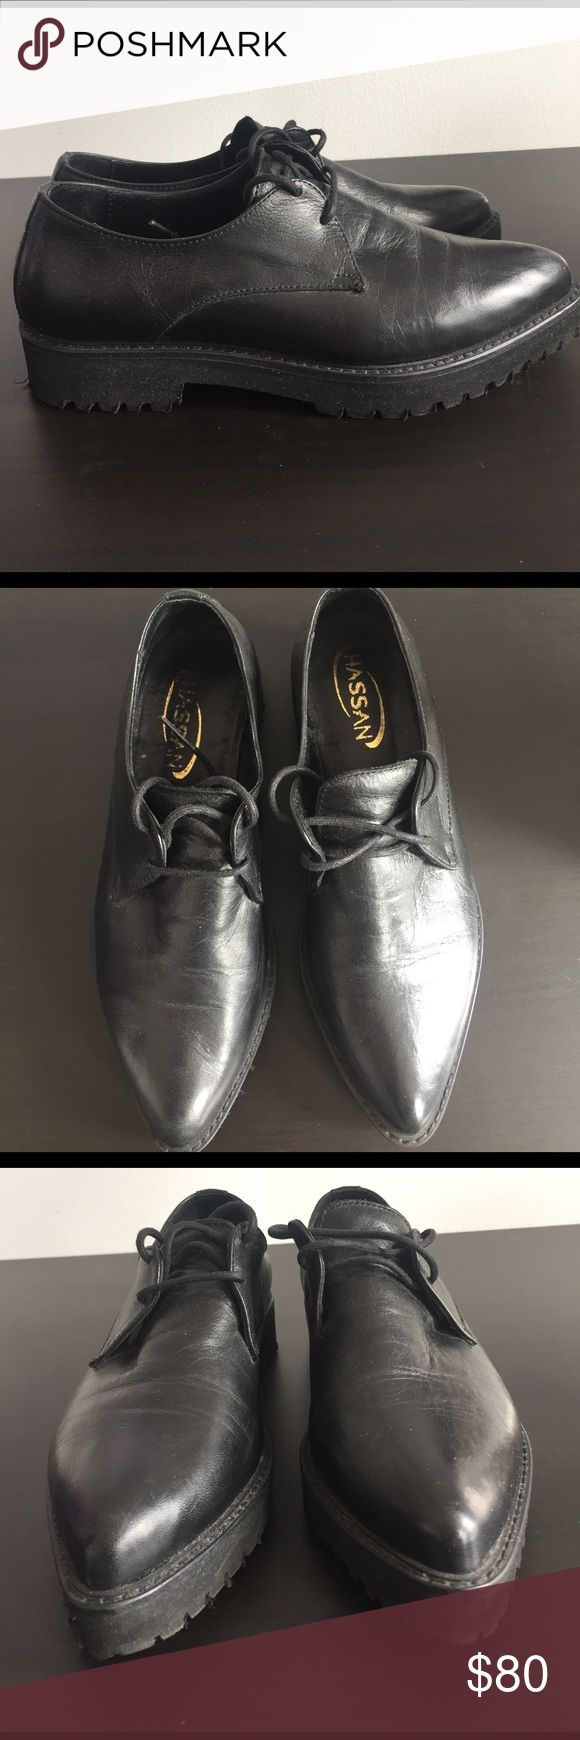 Hassan Italian loafers Italian genuine leather black shoes. Extremely comfortable and great for spring/fall weather. Open to offers. hassan Shoes Flats & Loafers